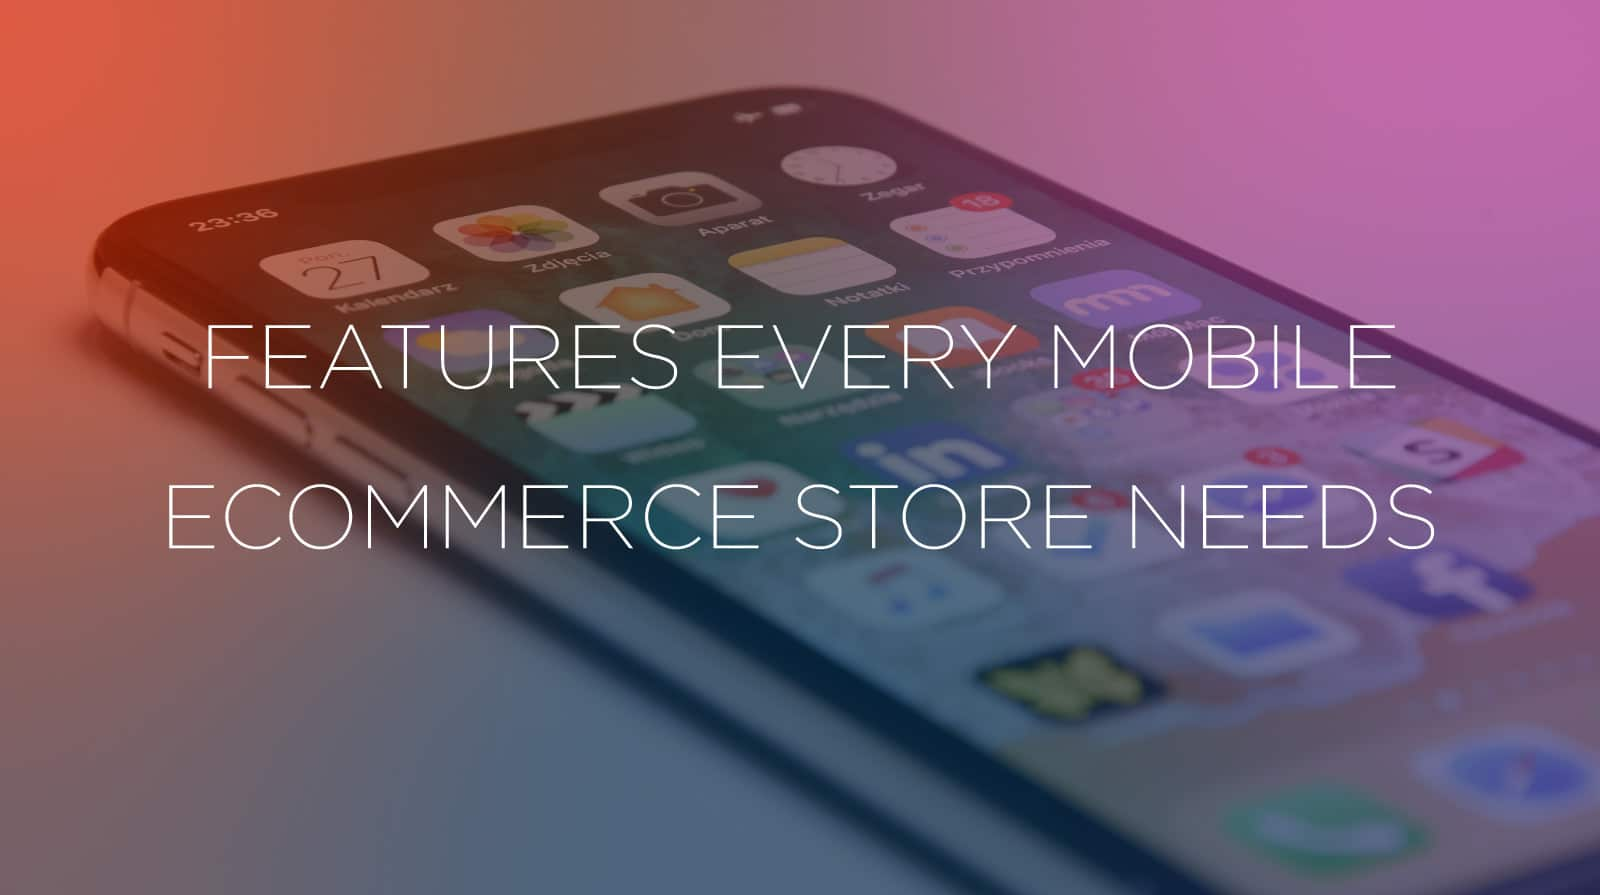 Features Every Mobile Ecommerce Store Needs